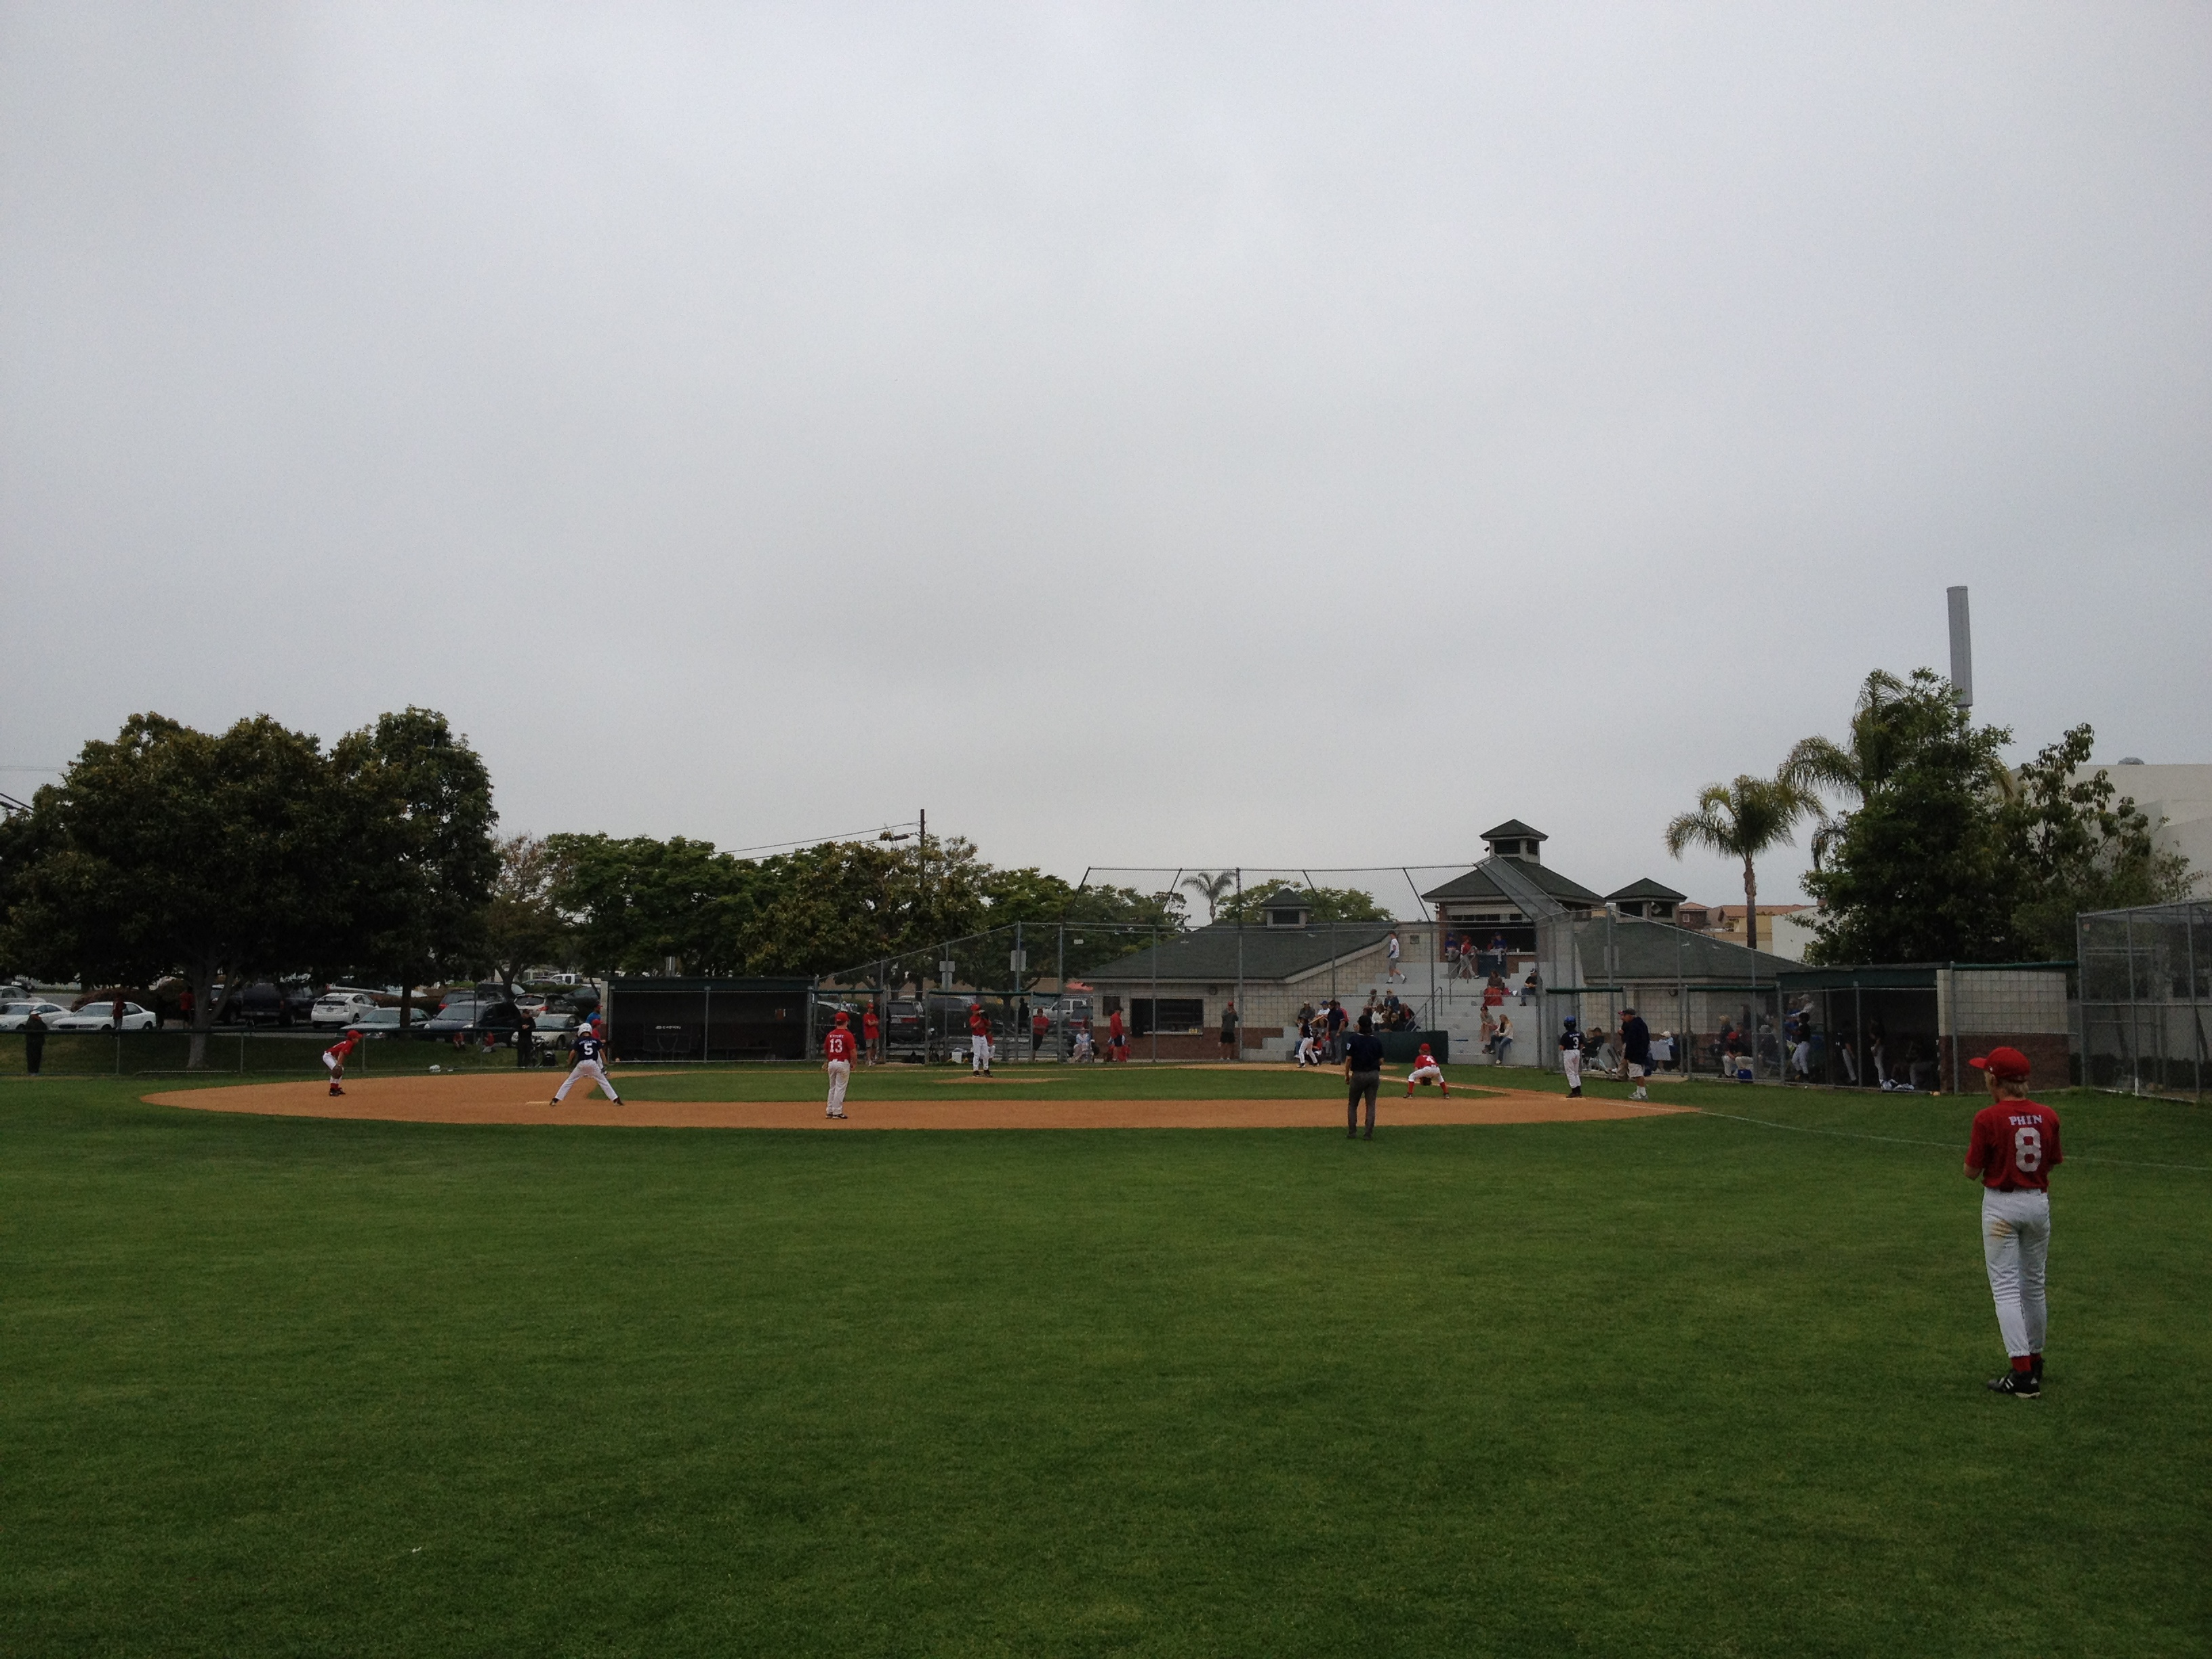 Coronado Little League Field - Spring Fun!